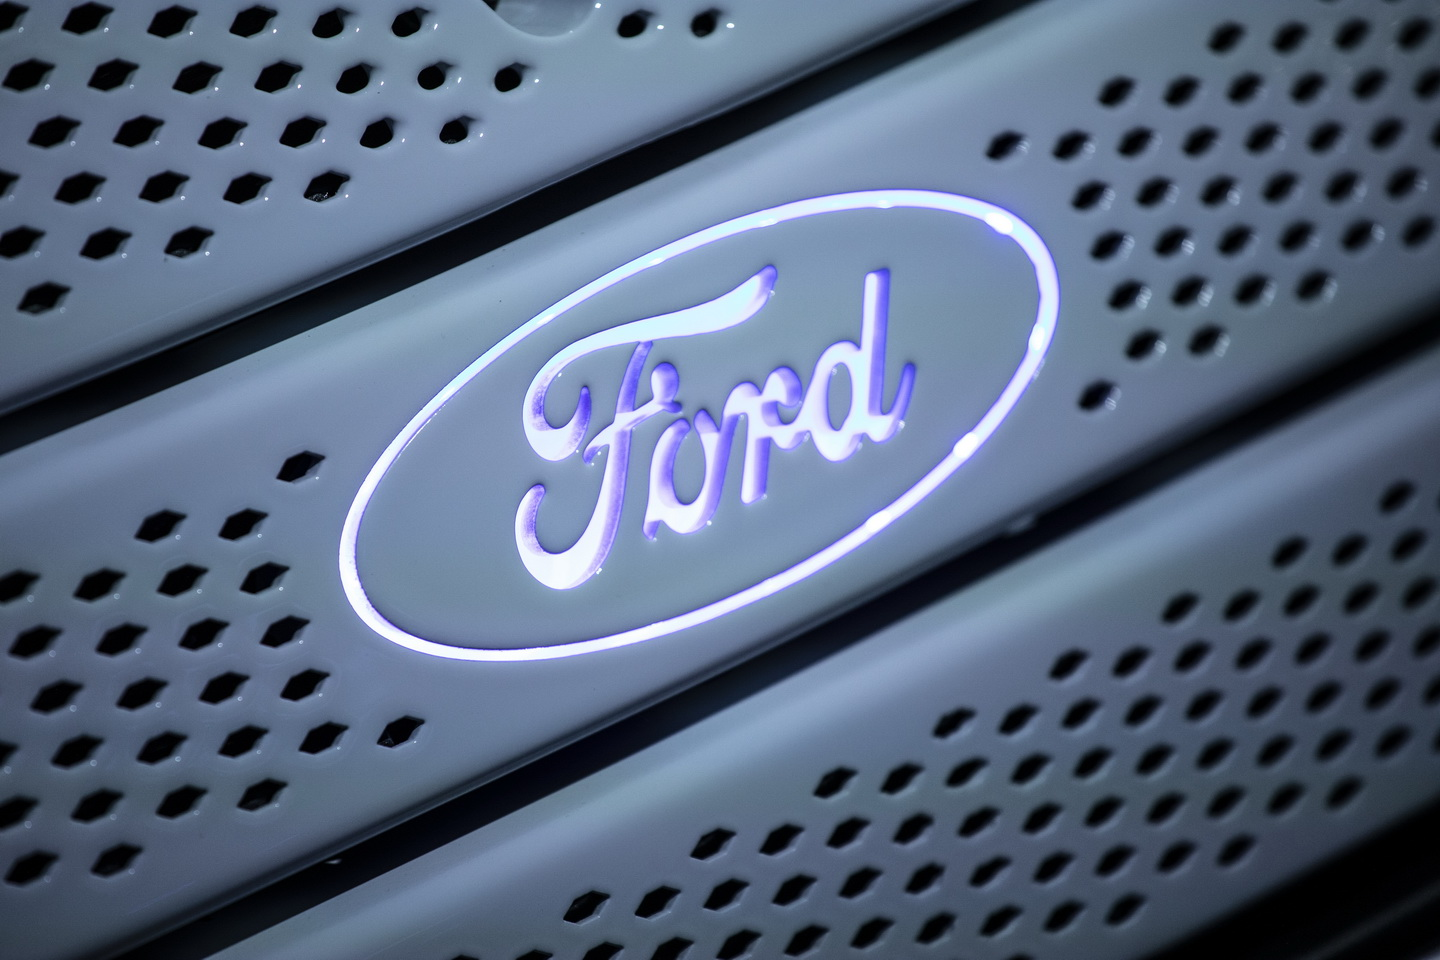 Ford Go Further 2019 event hybrid cars 1